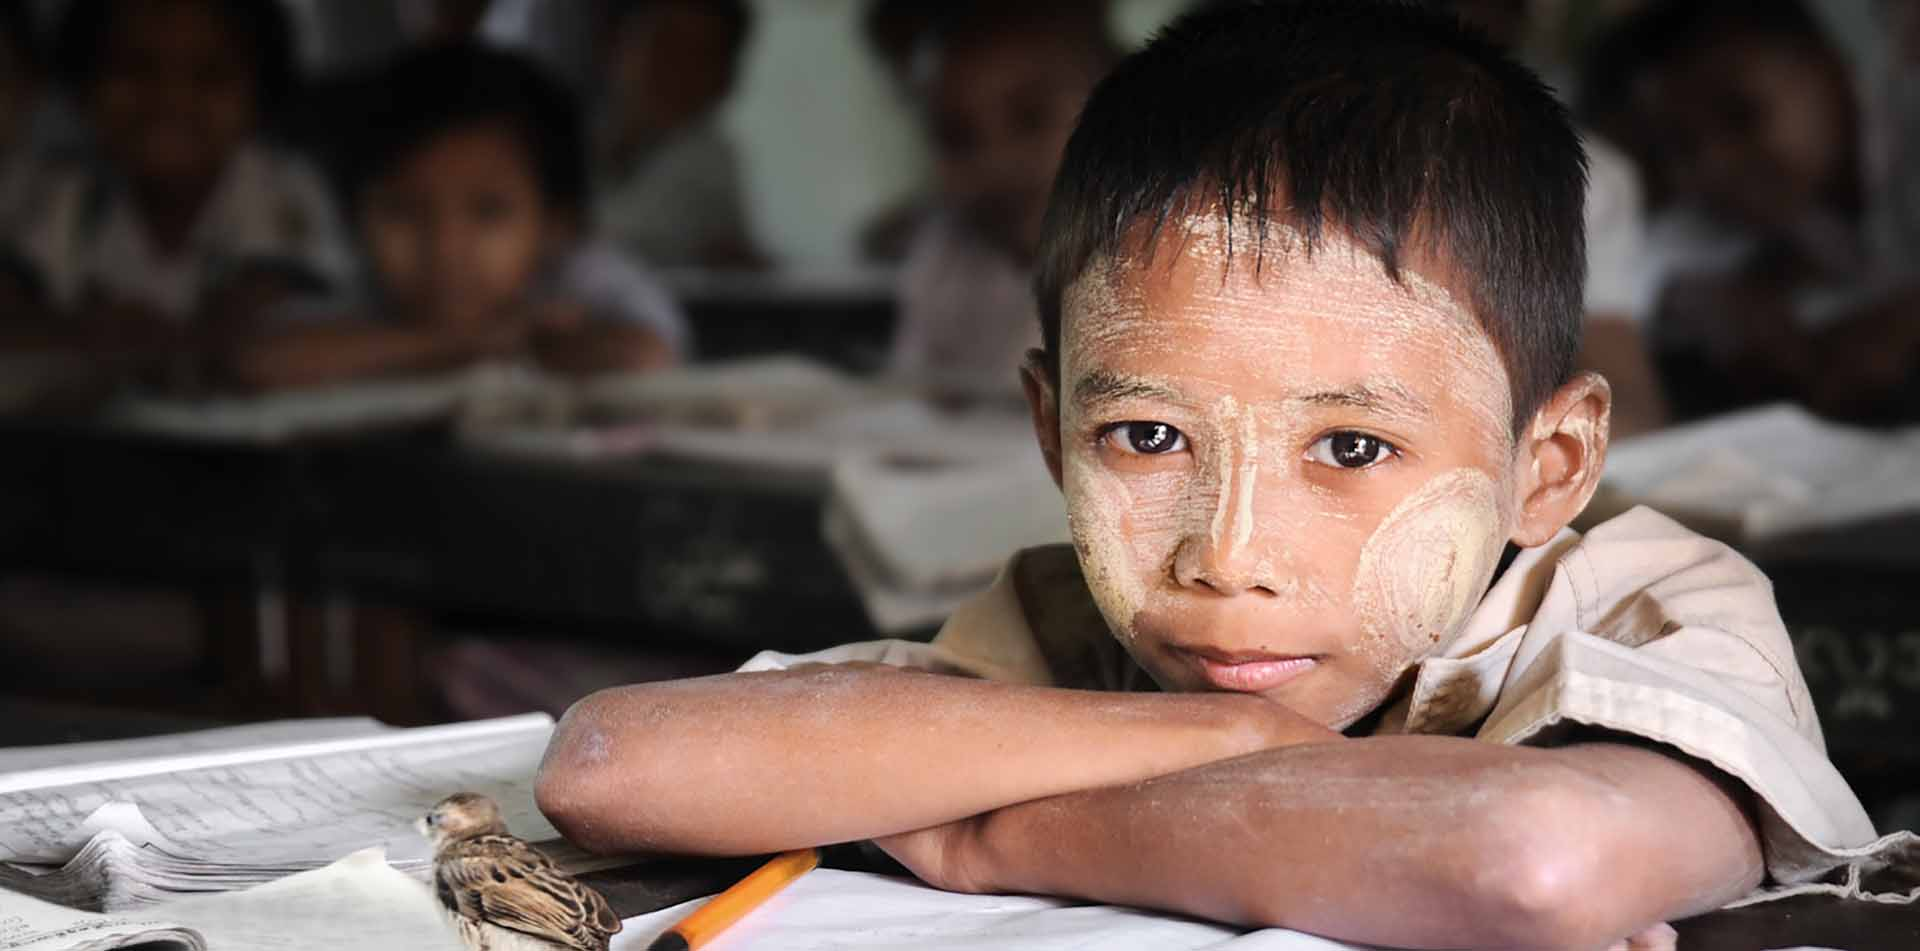 Asia Myanmar young local schoolboy with face painting sitting at classroom desk - luxury vacation destinations